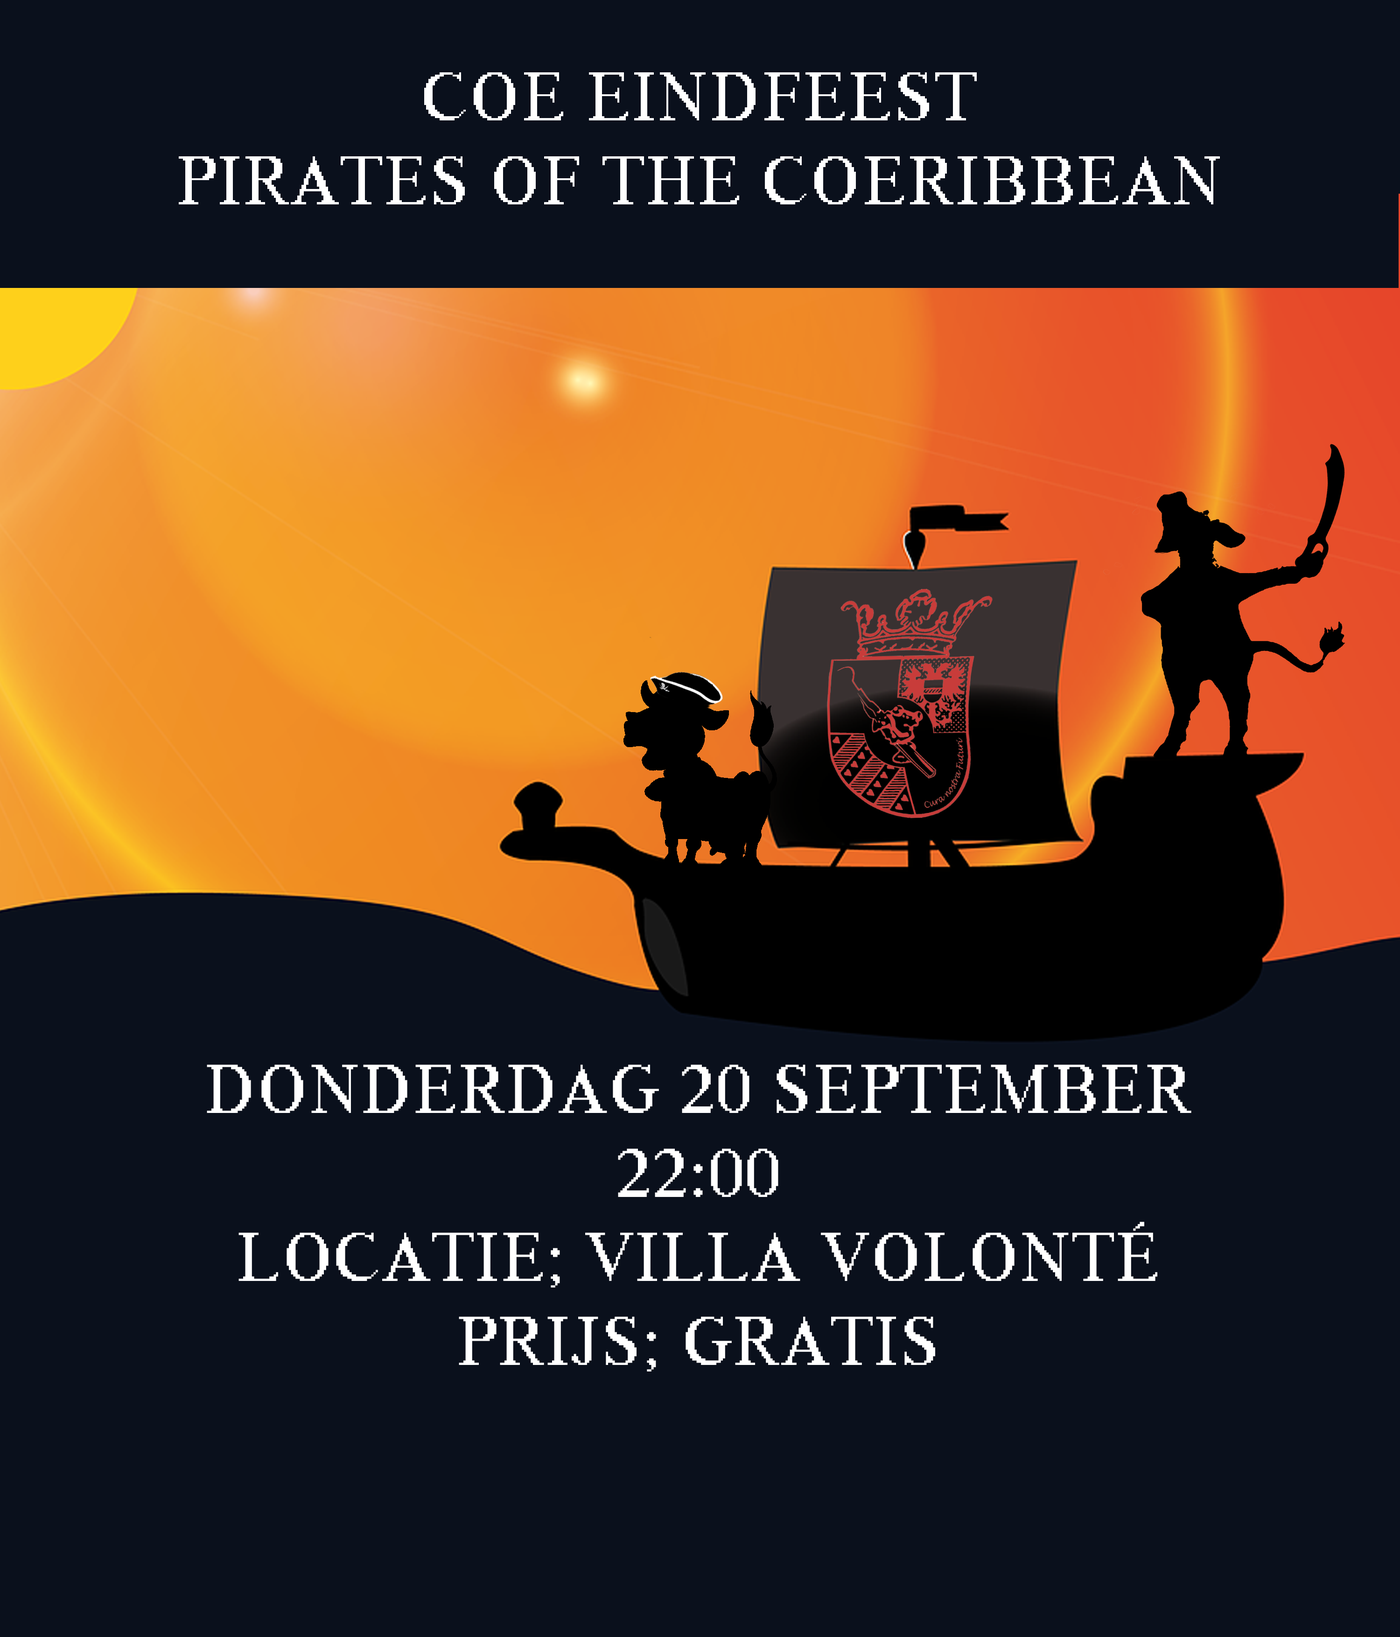 COE eindfeest- Pirates of the COEribbean